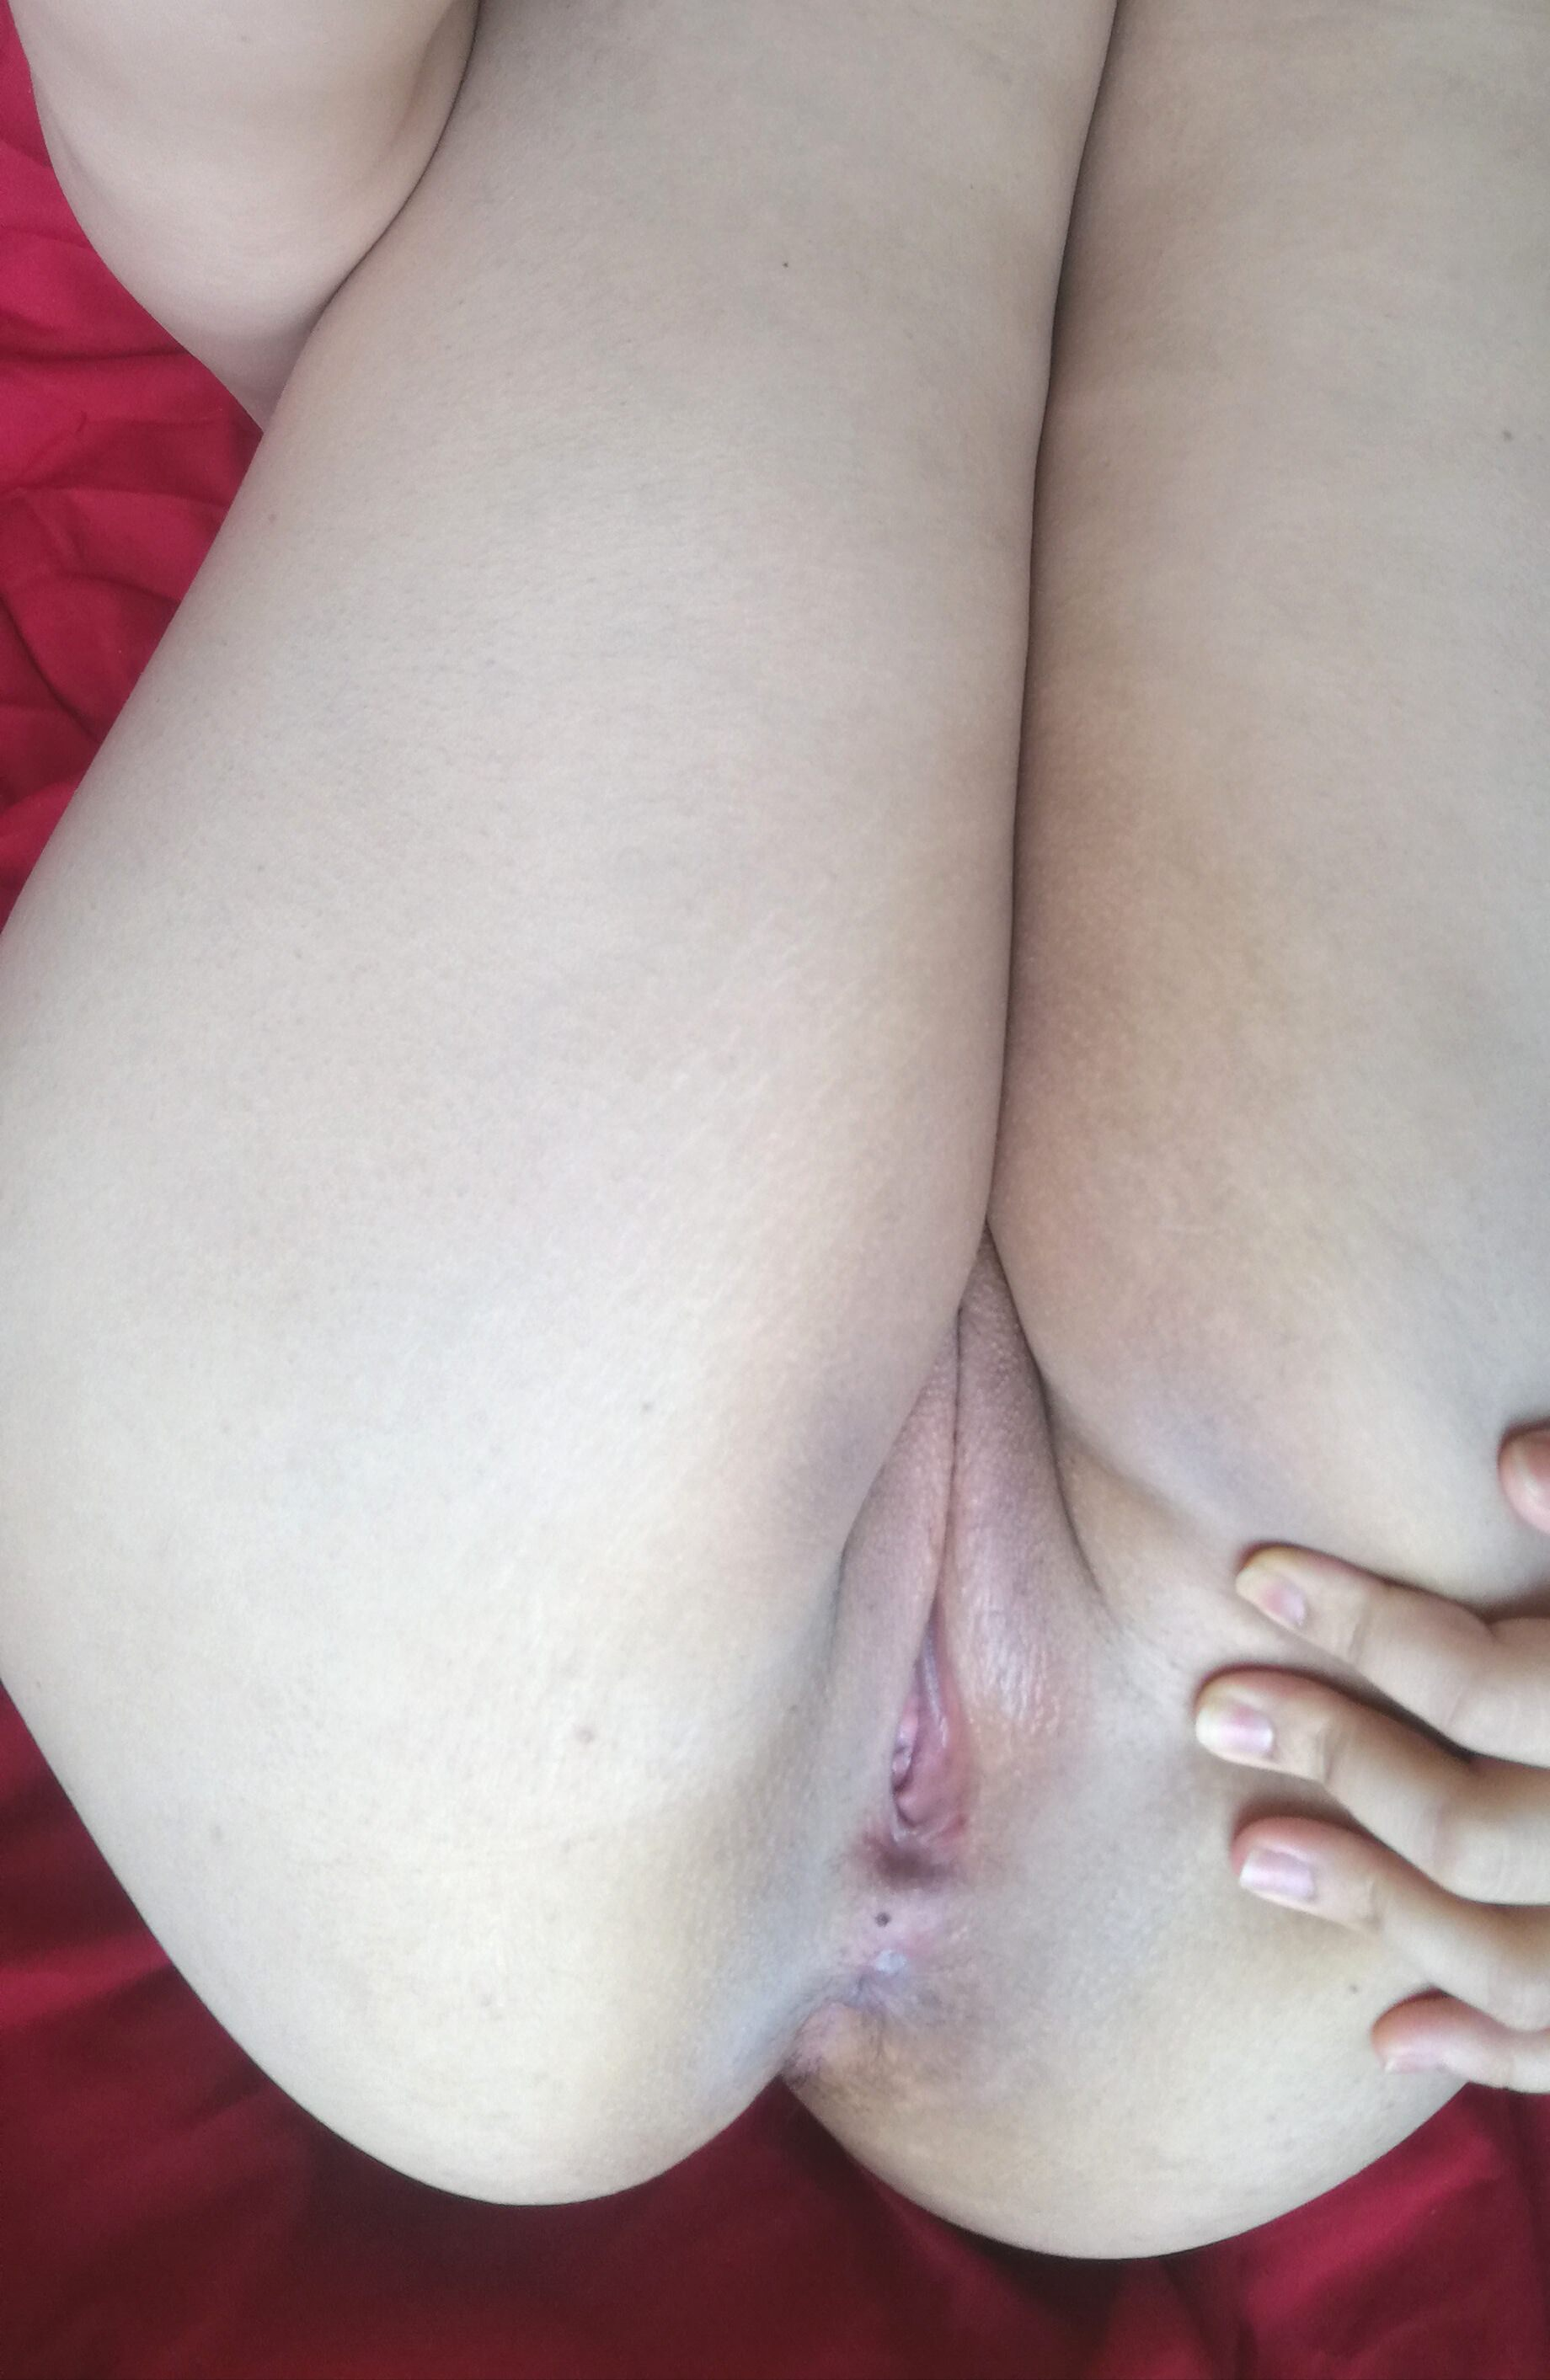 Butt hole shaved